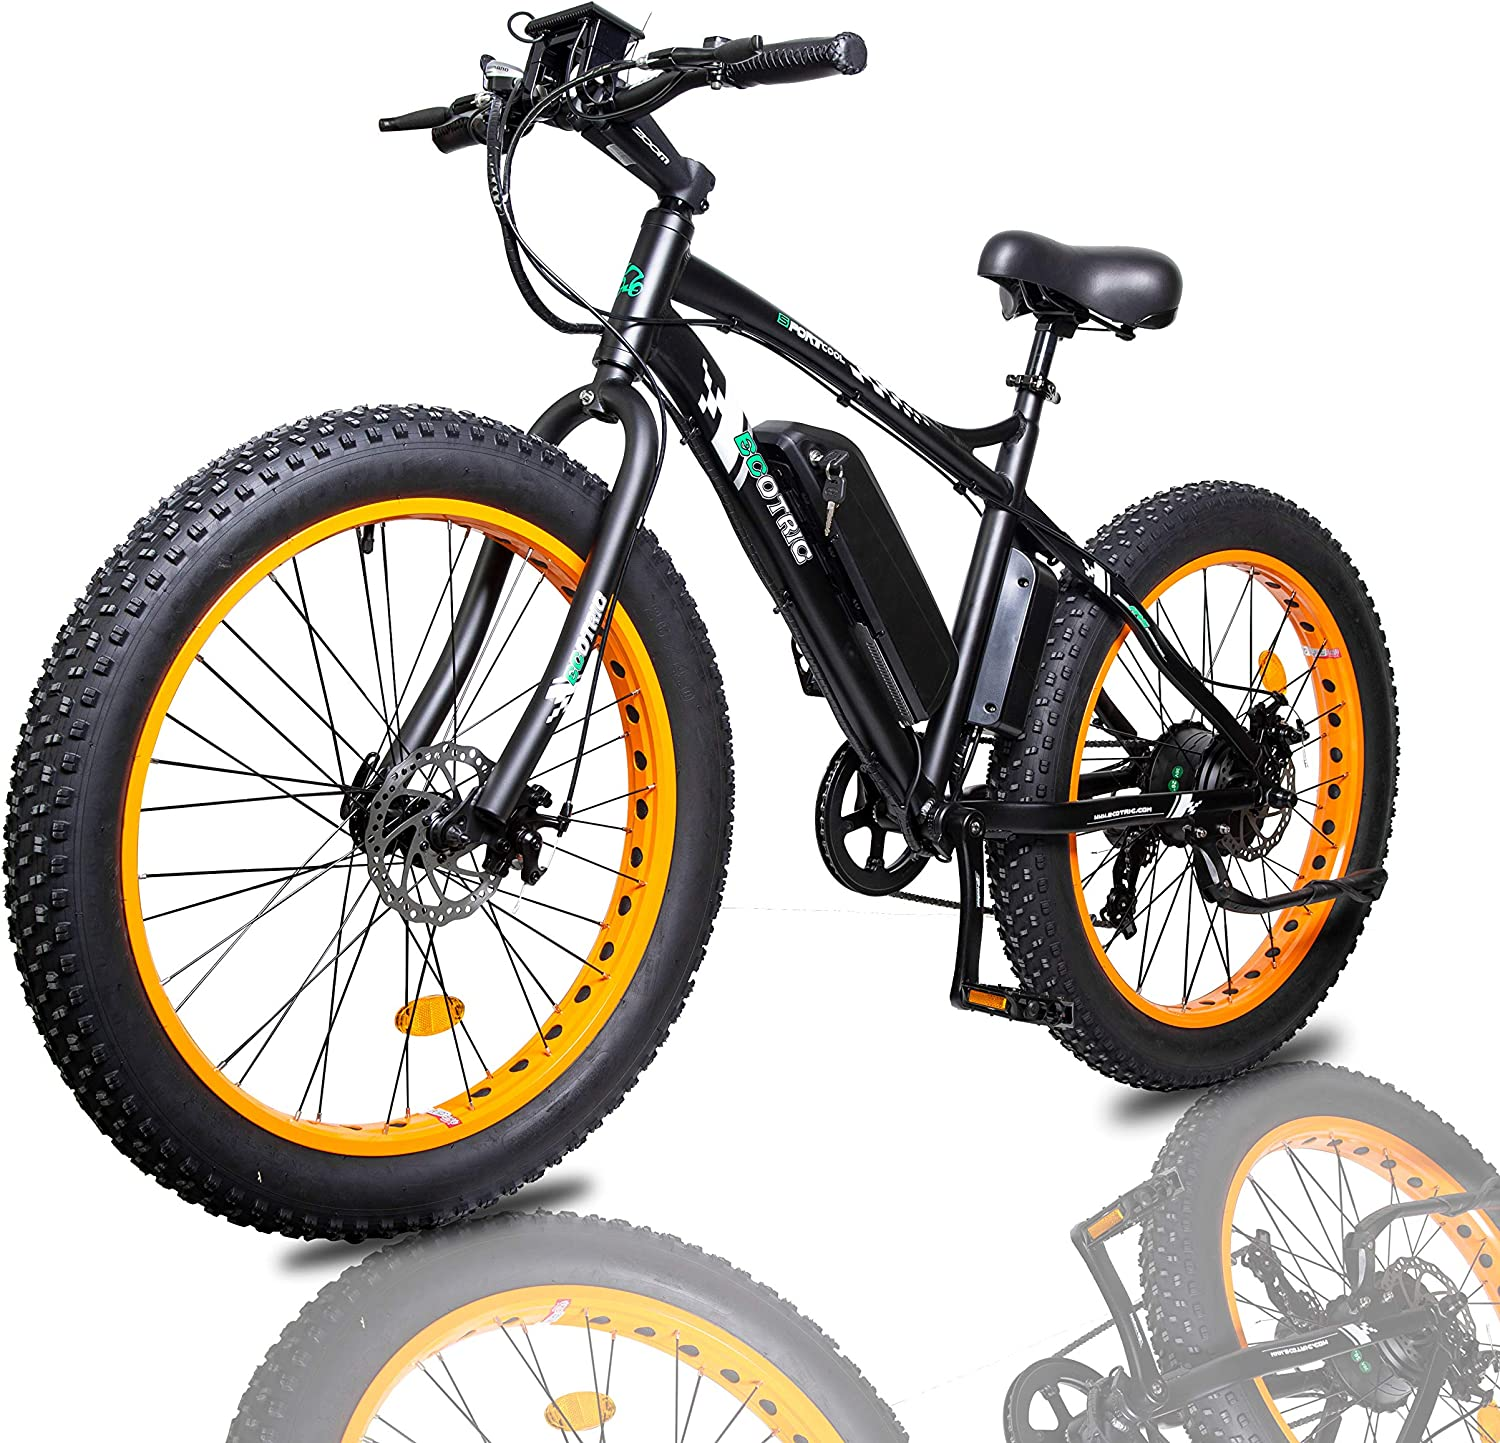 ECOTRIC fat bike